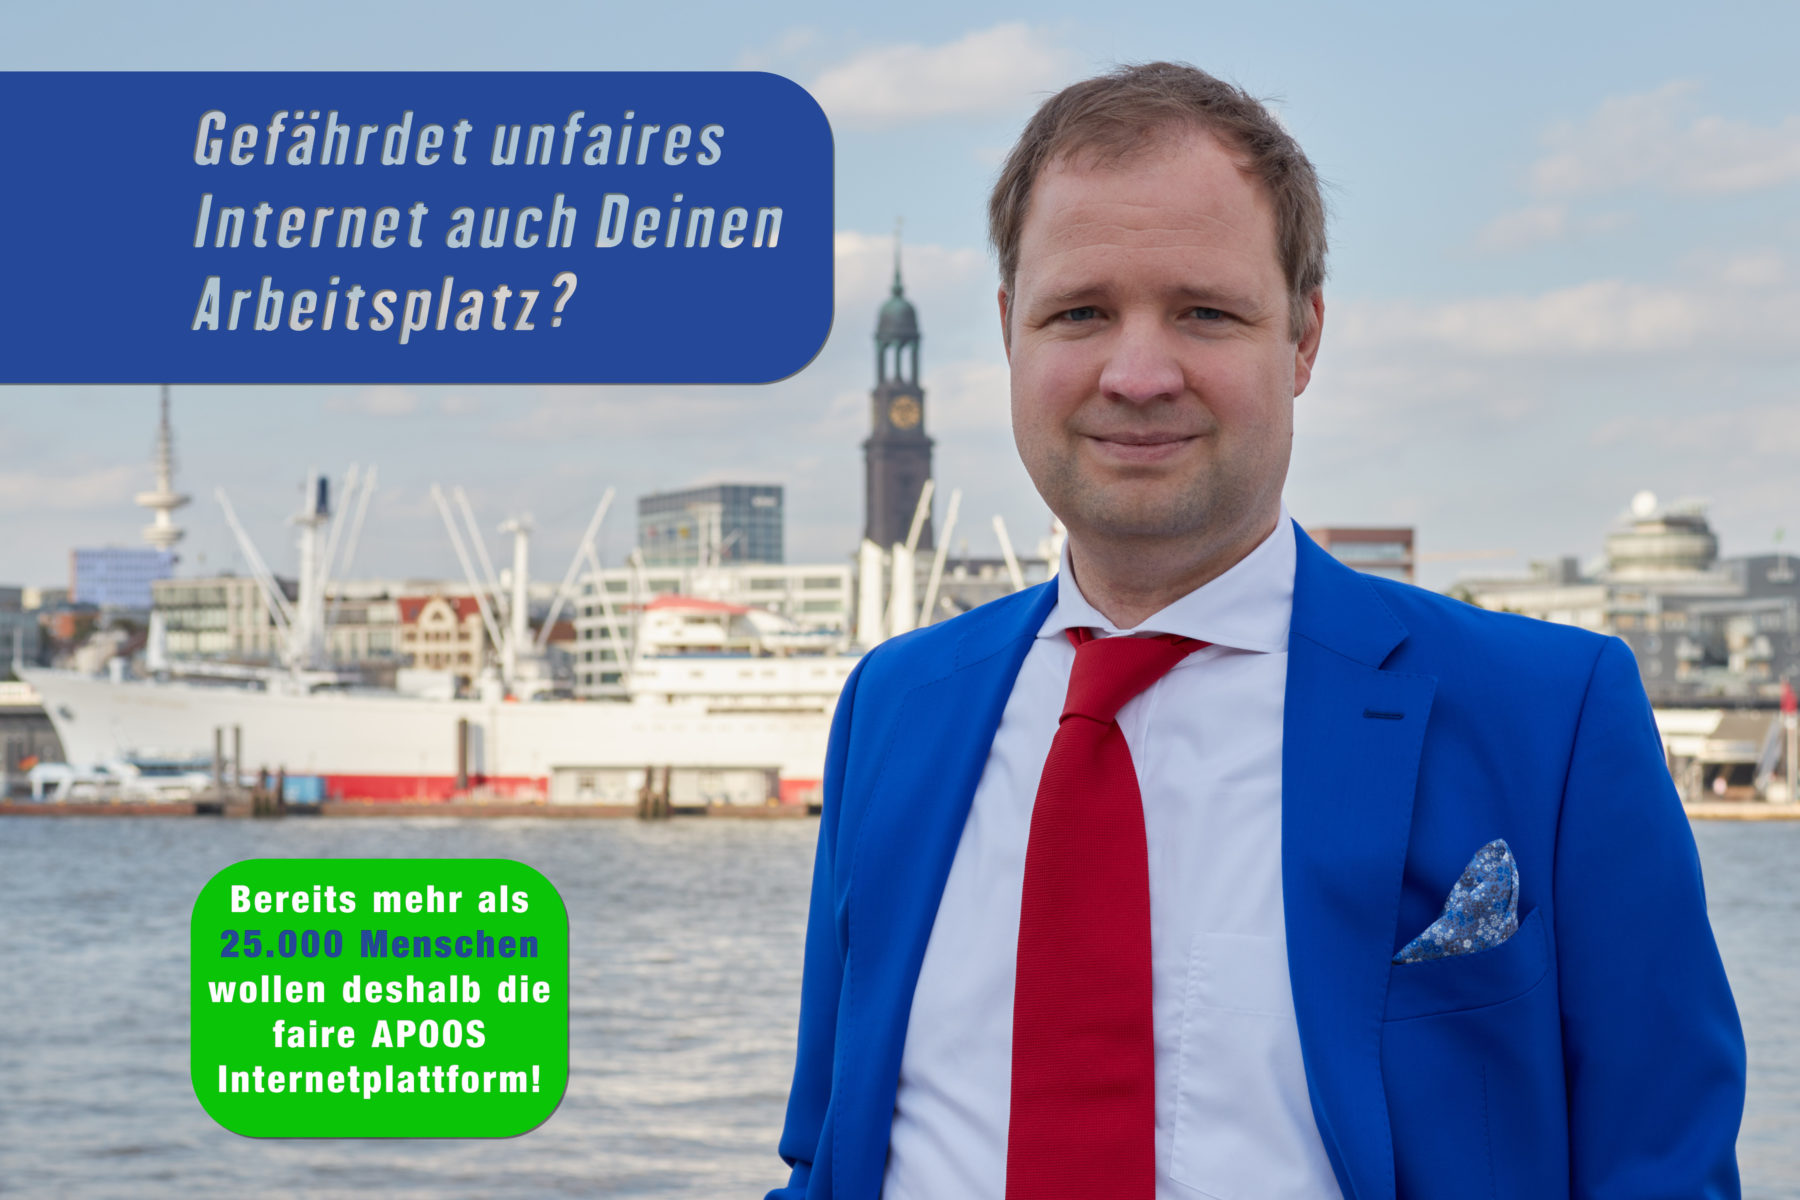 Faires Internet Hamburg